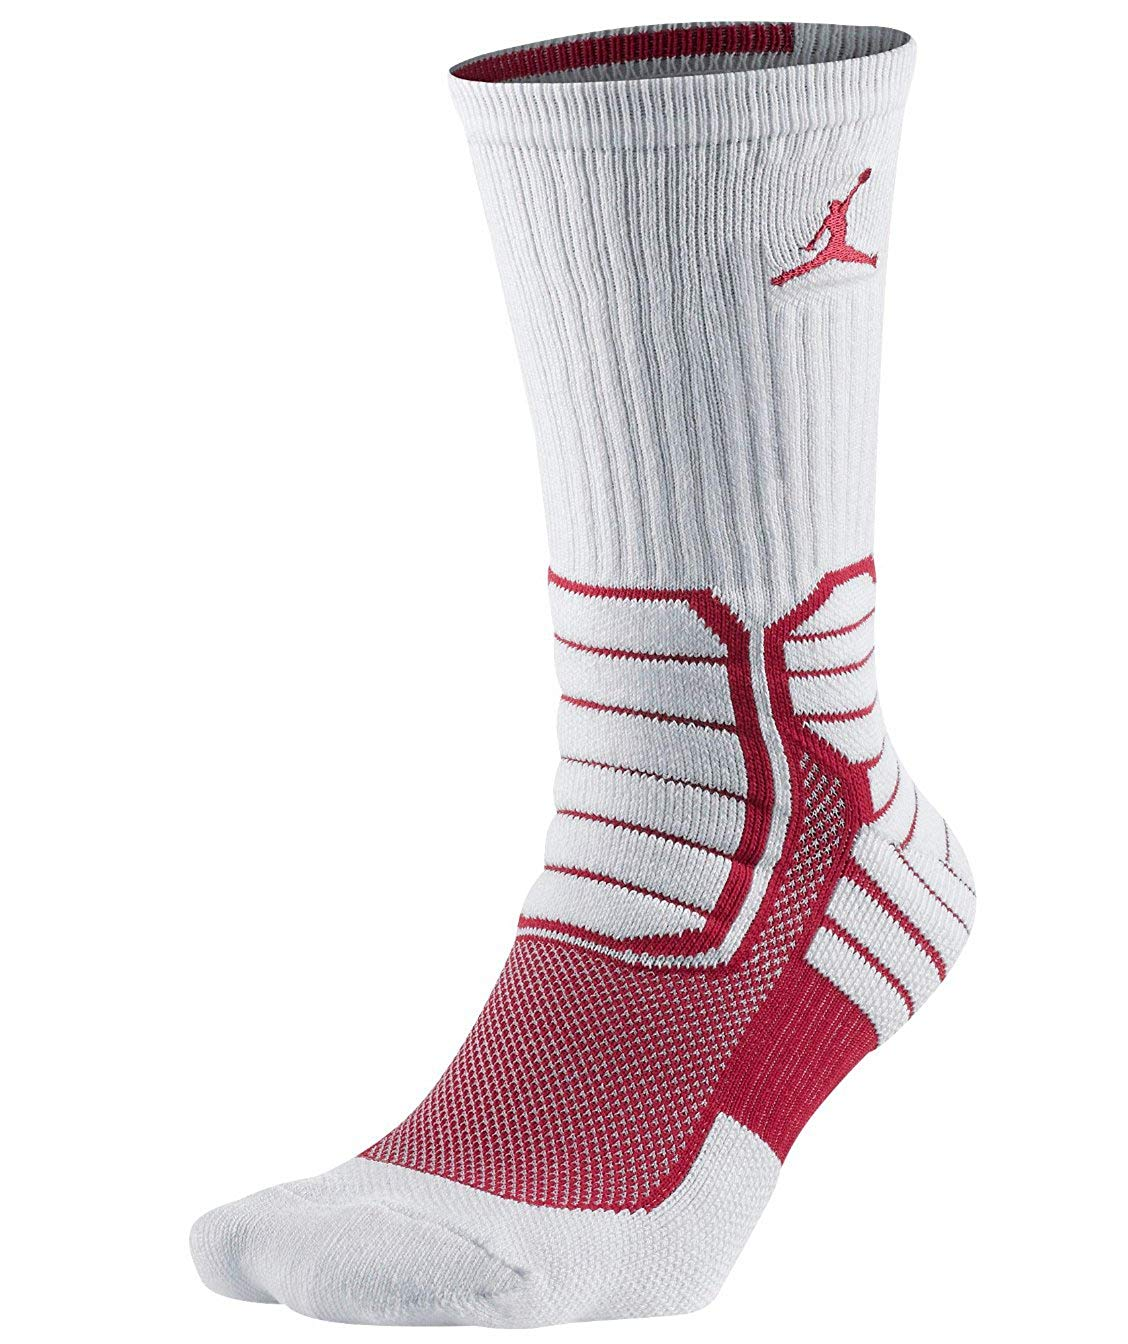 Nike Jordan Jumpman Advance White Men's Crew Basketball Socks Size L(8-12)